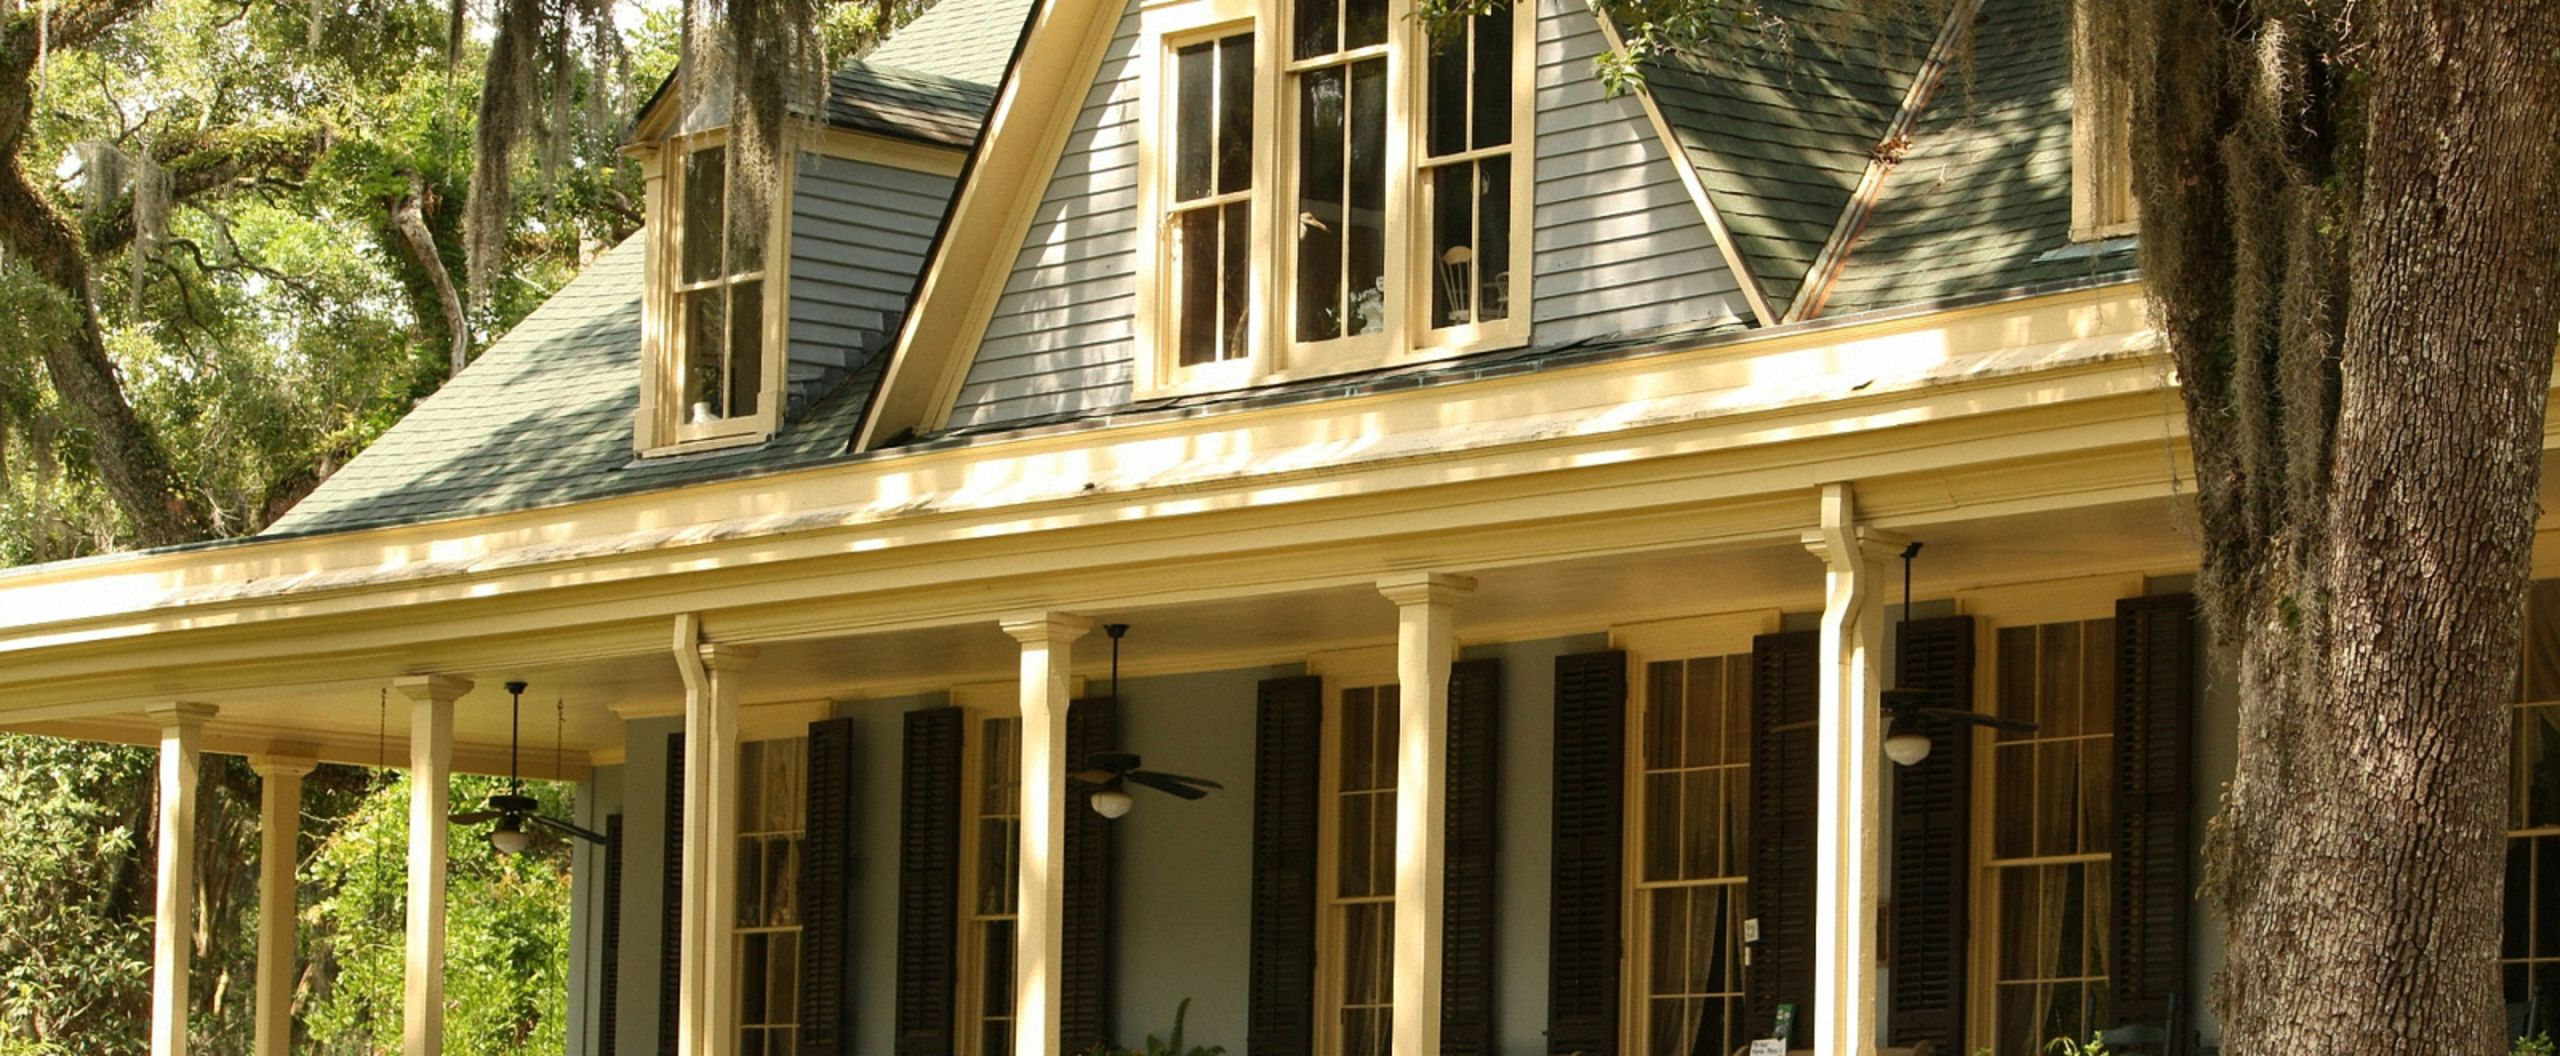 Wraparound porches and dormered roofs